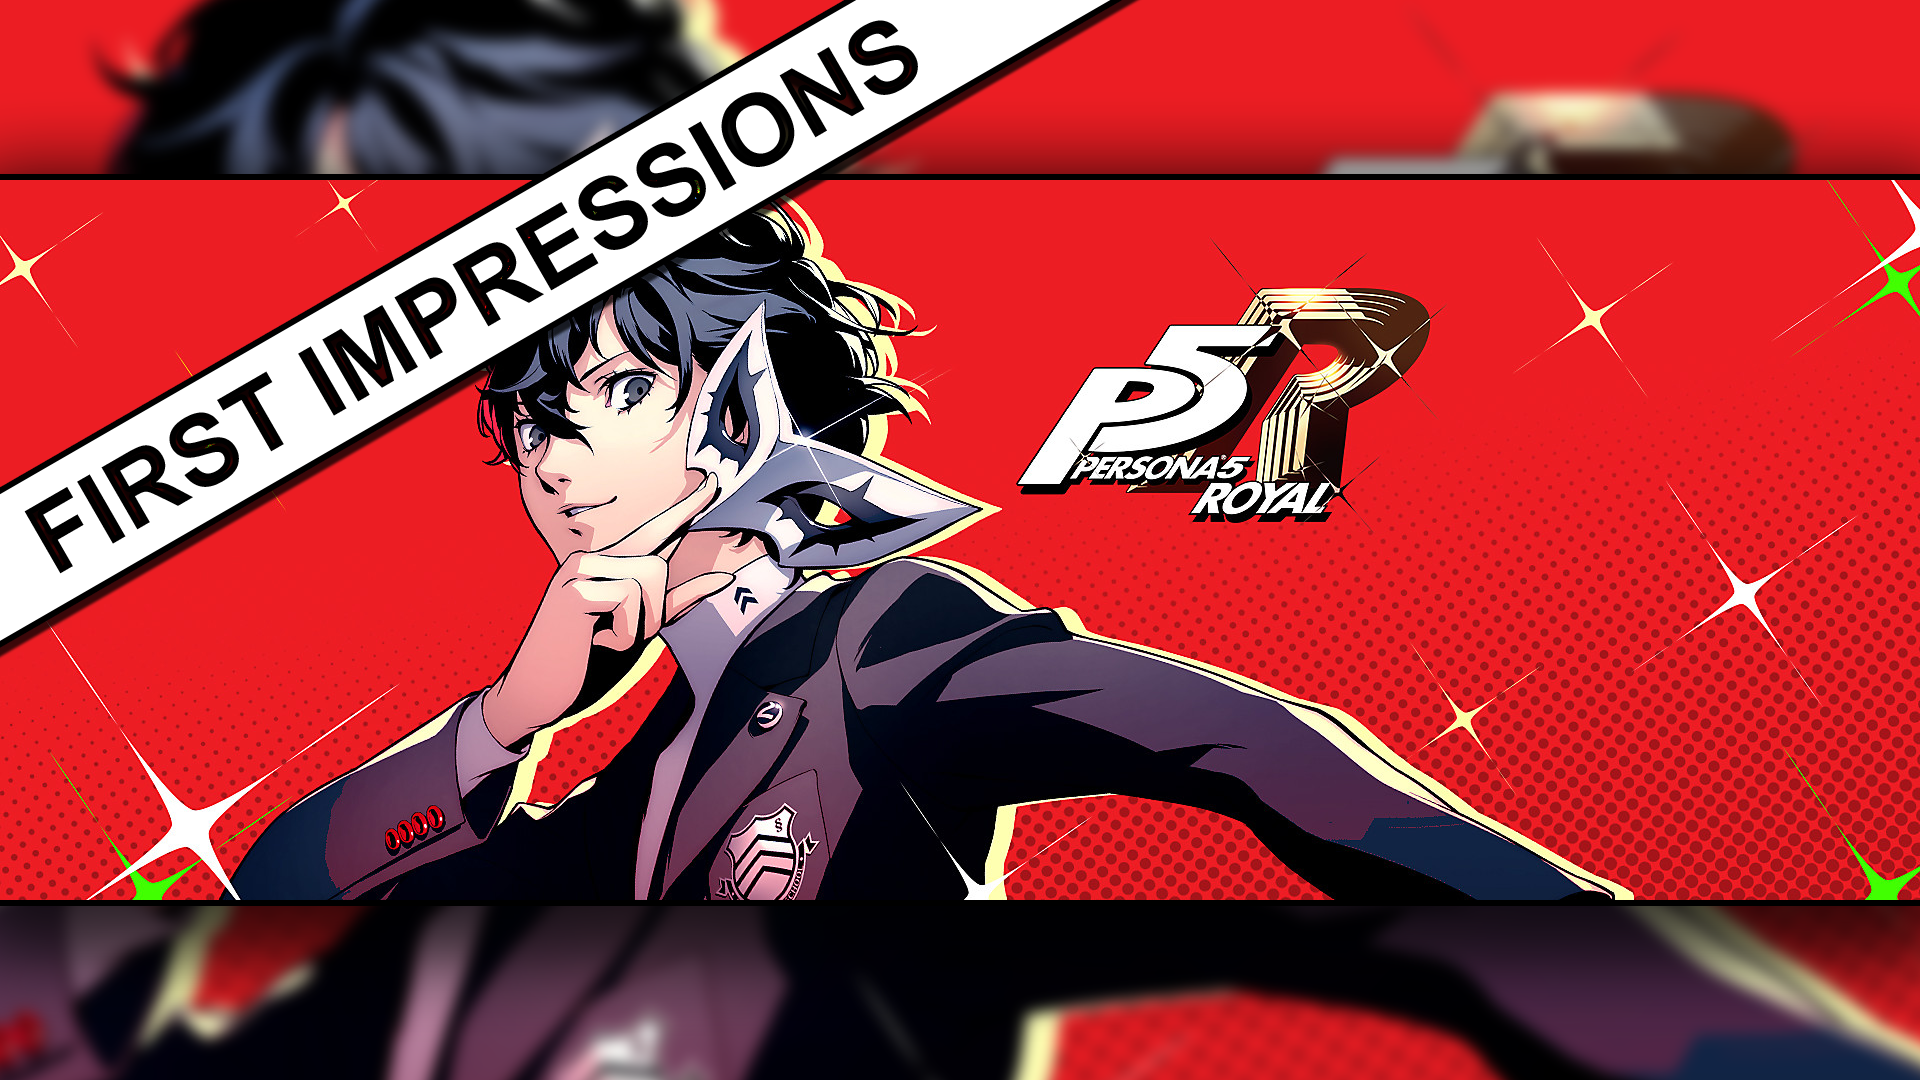 Persona 5 Royal - First Impressions